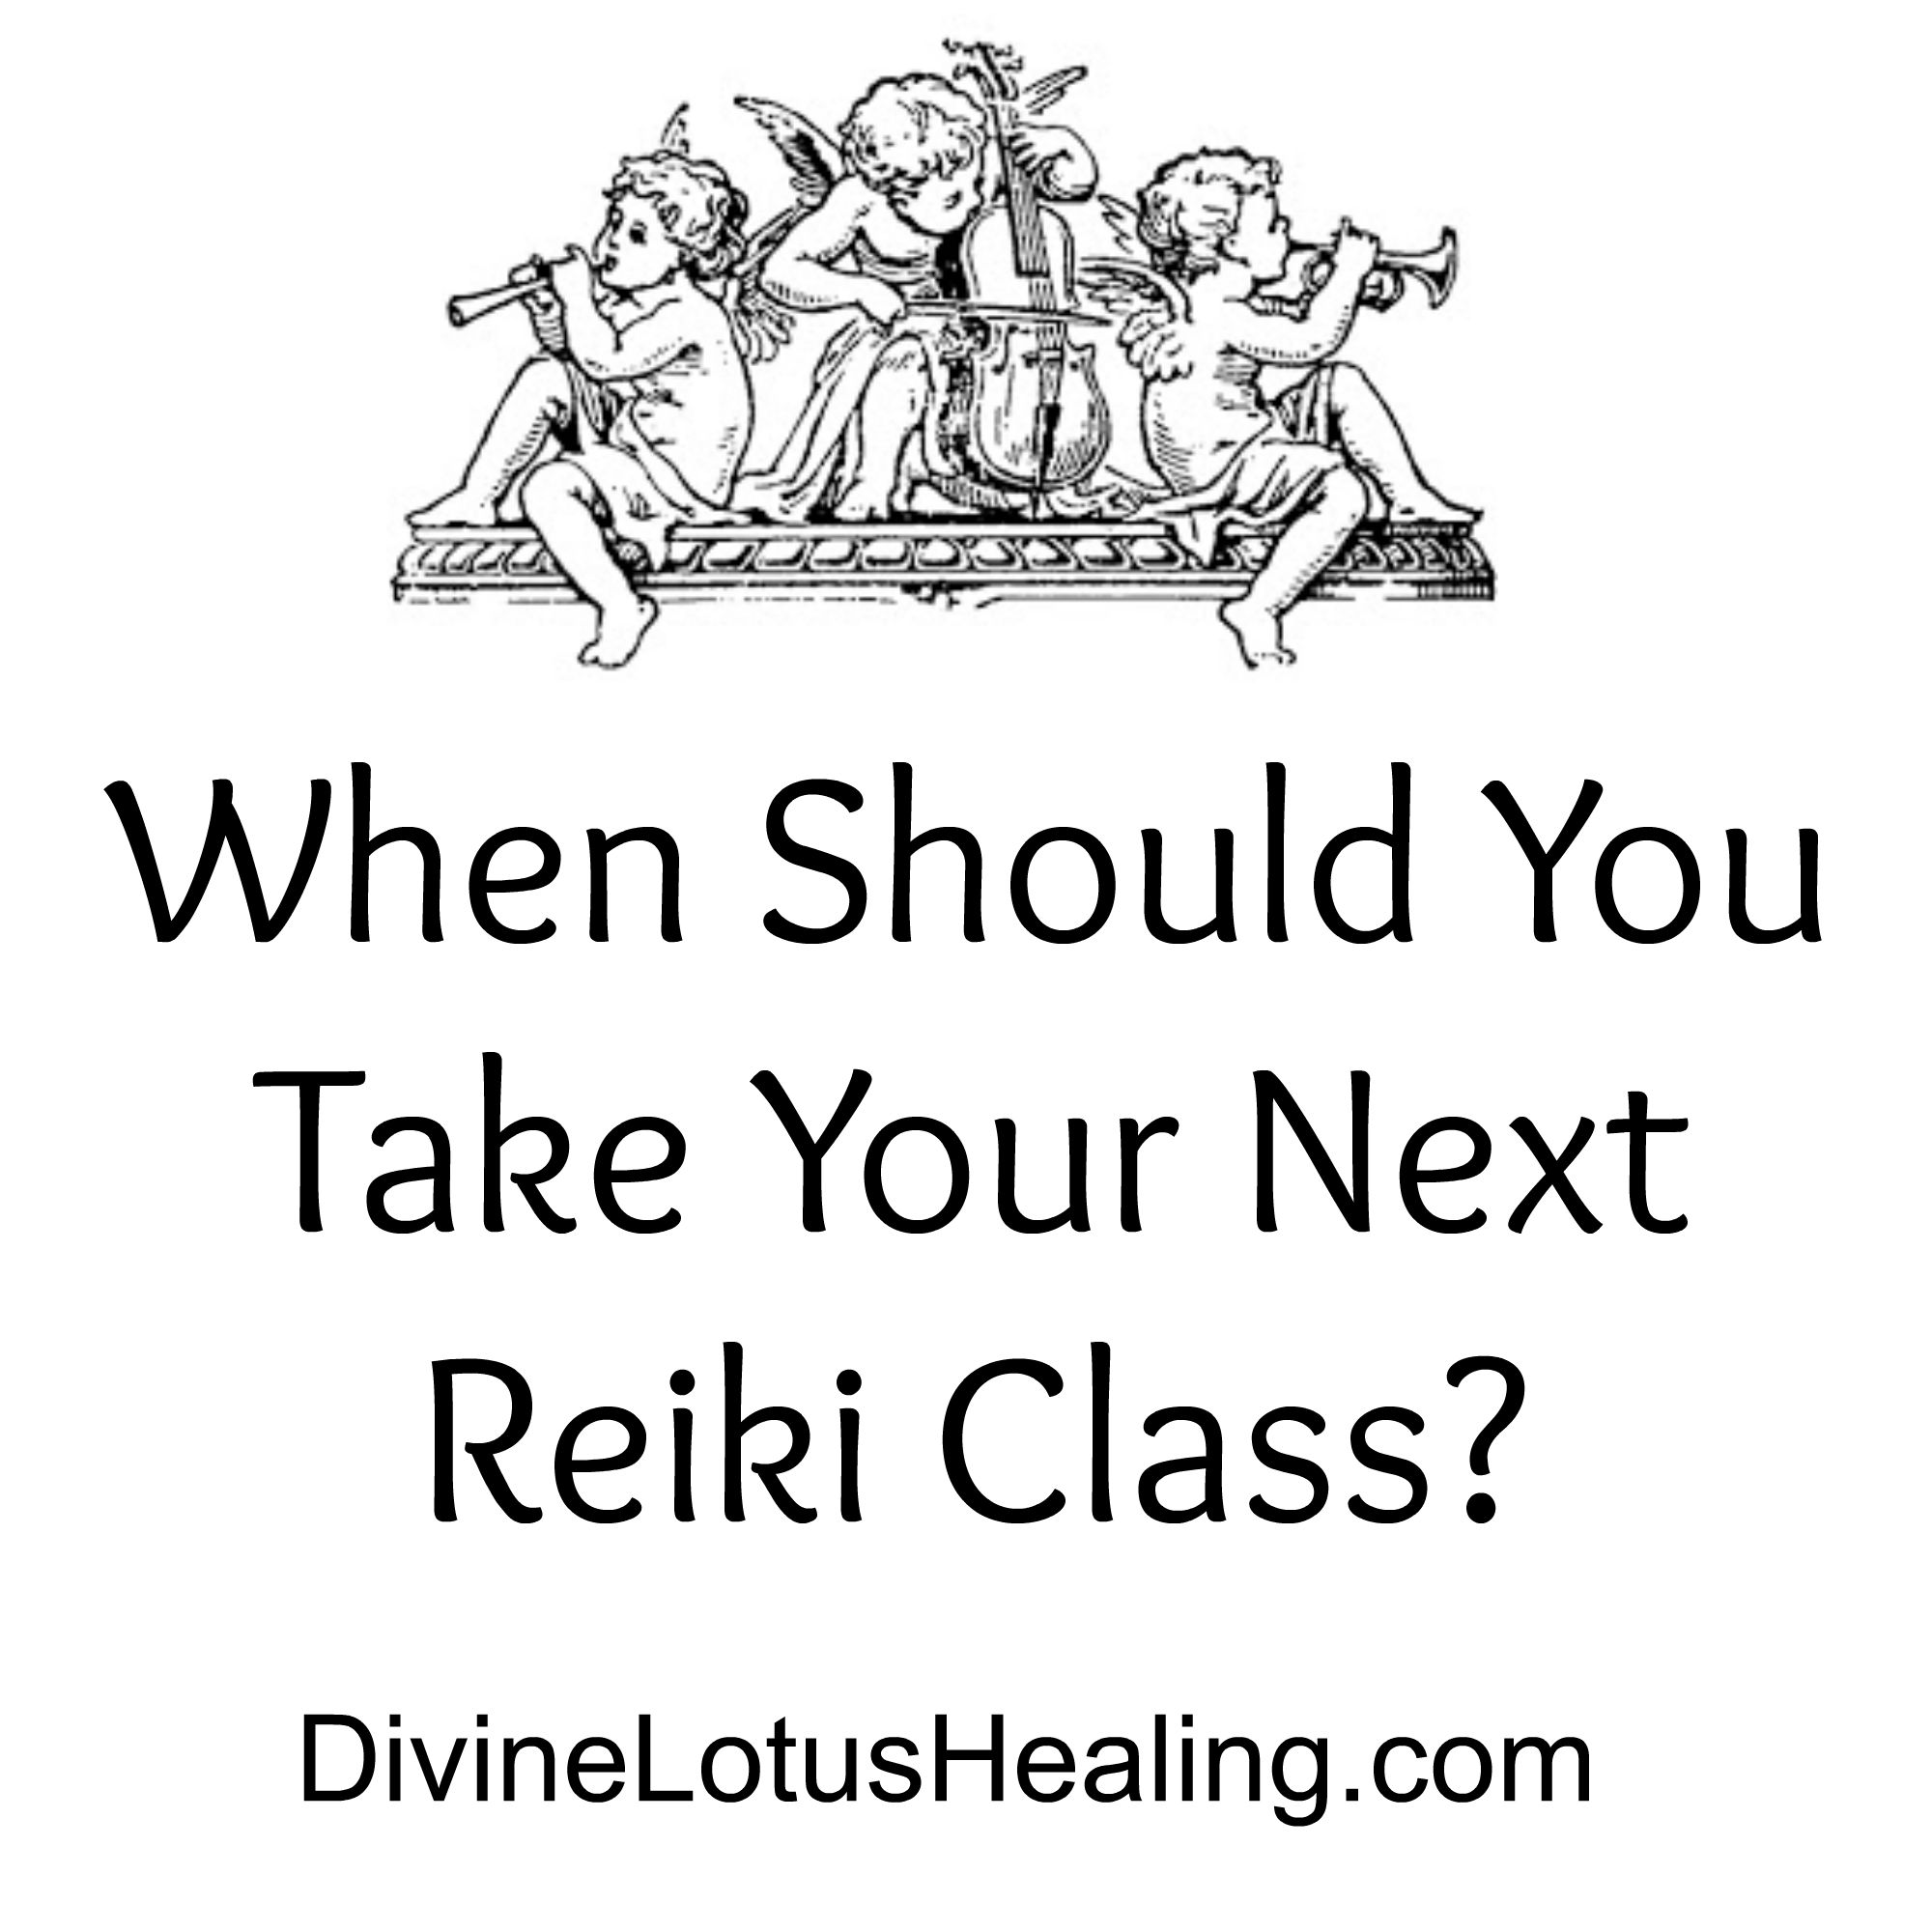 Divine Lotus Healing | When Should You Take Your Next Reiki Class?